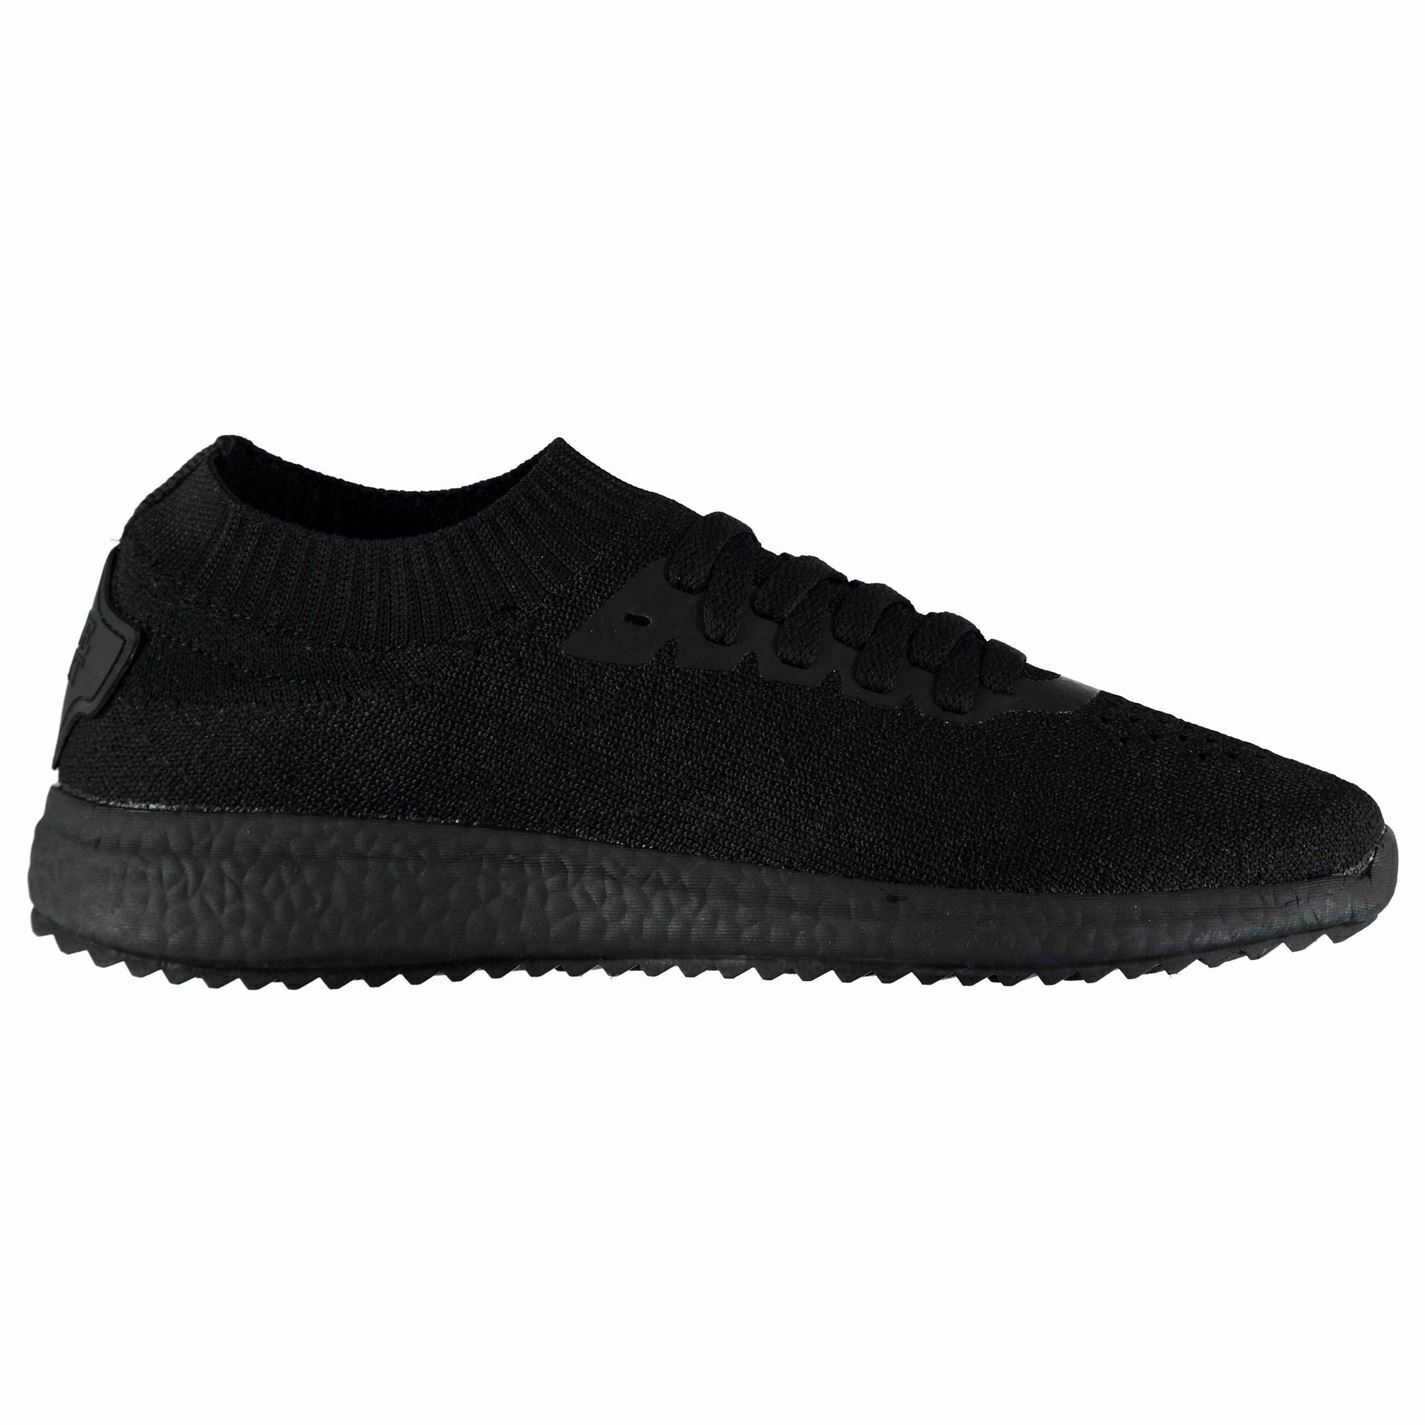 Luke Sport Mens Lex Trainers Sneakers Sports shoes Athletic Footwear Lace Up